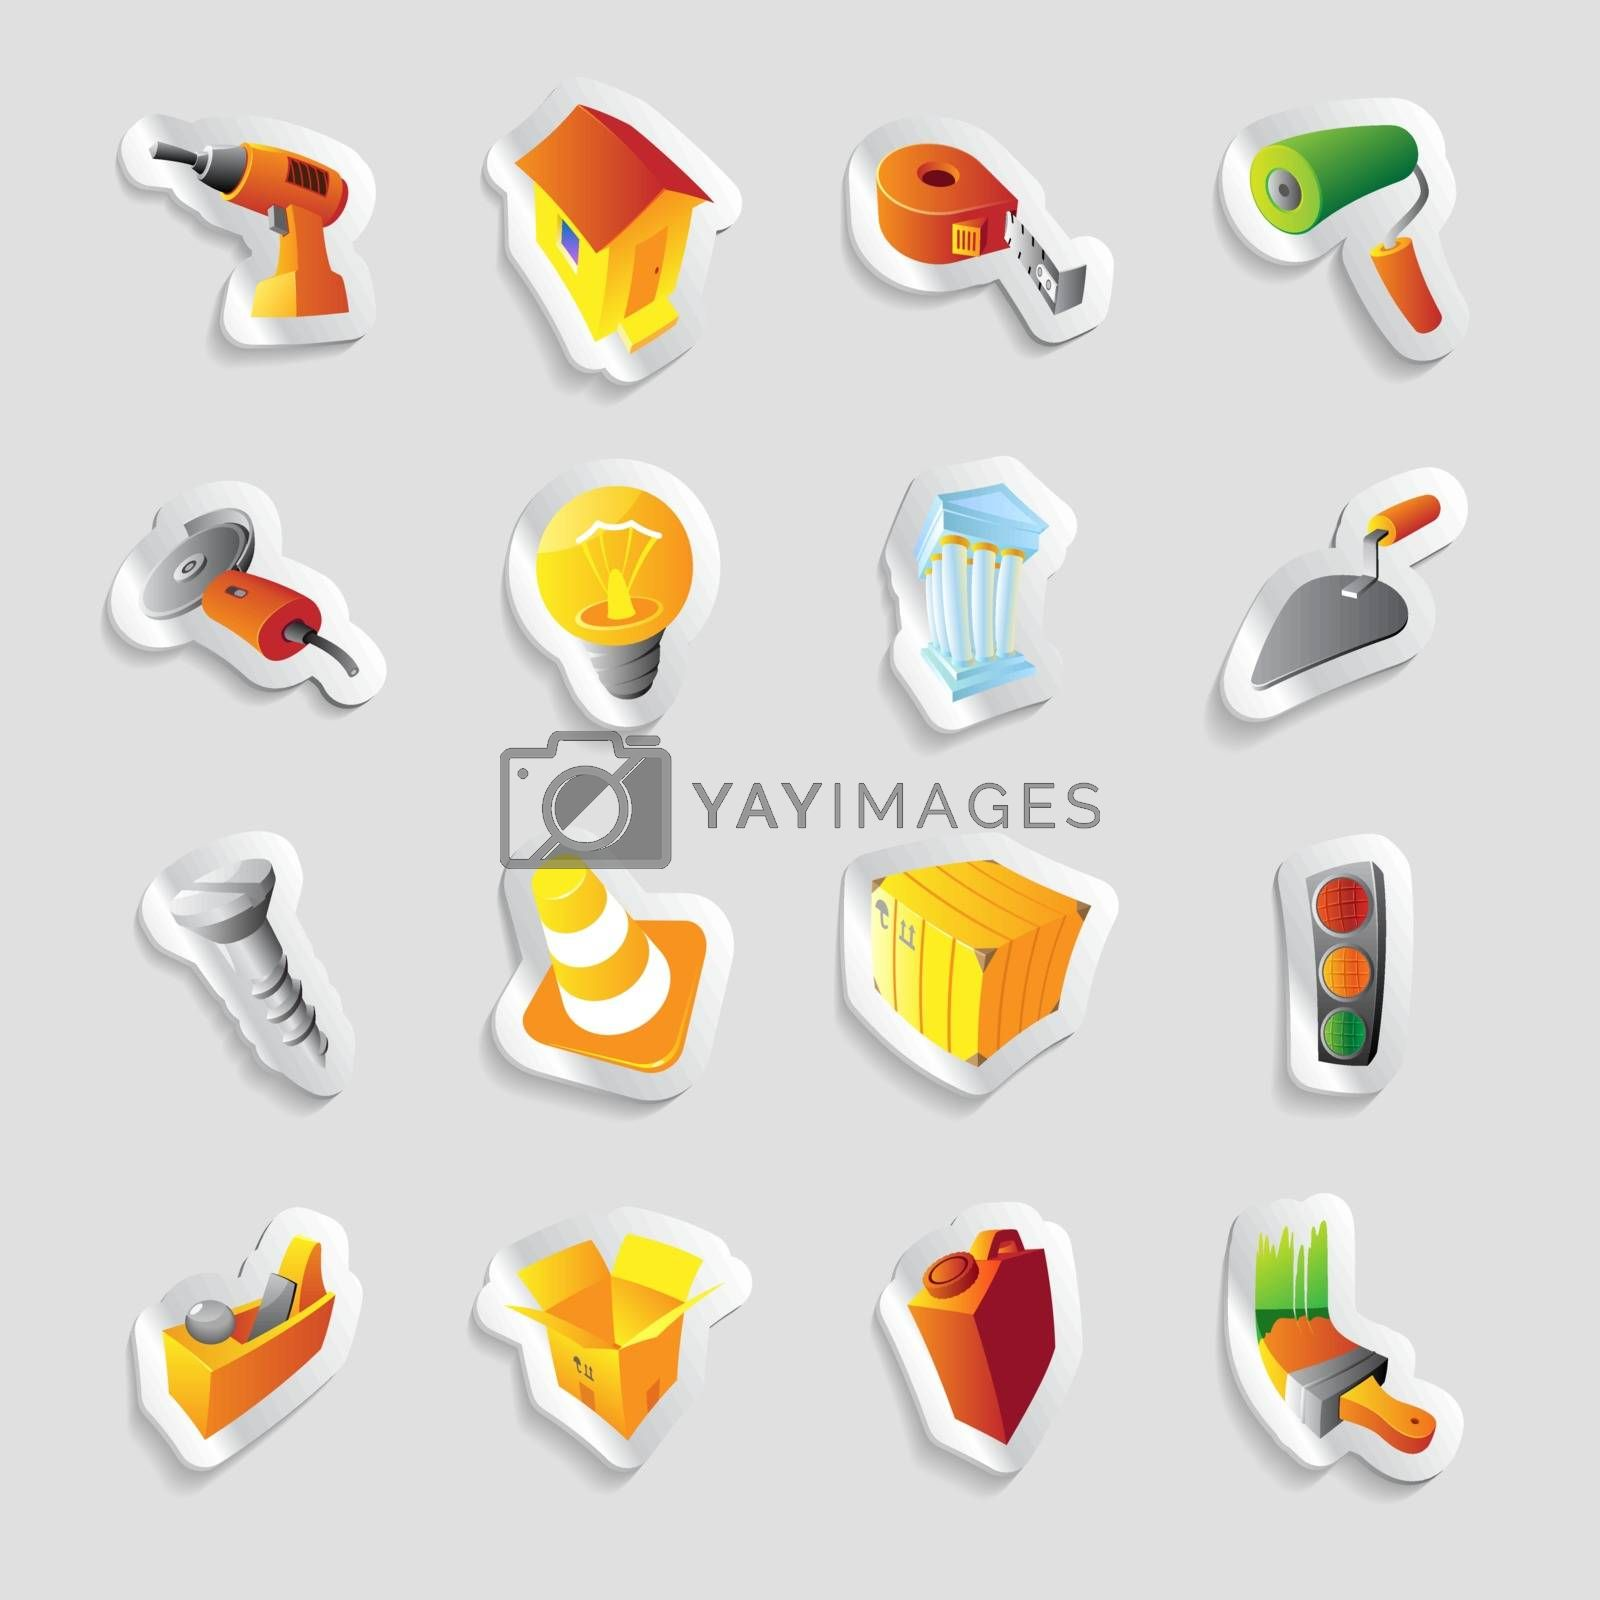 Icons for industry and technology by ildogesto